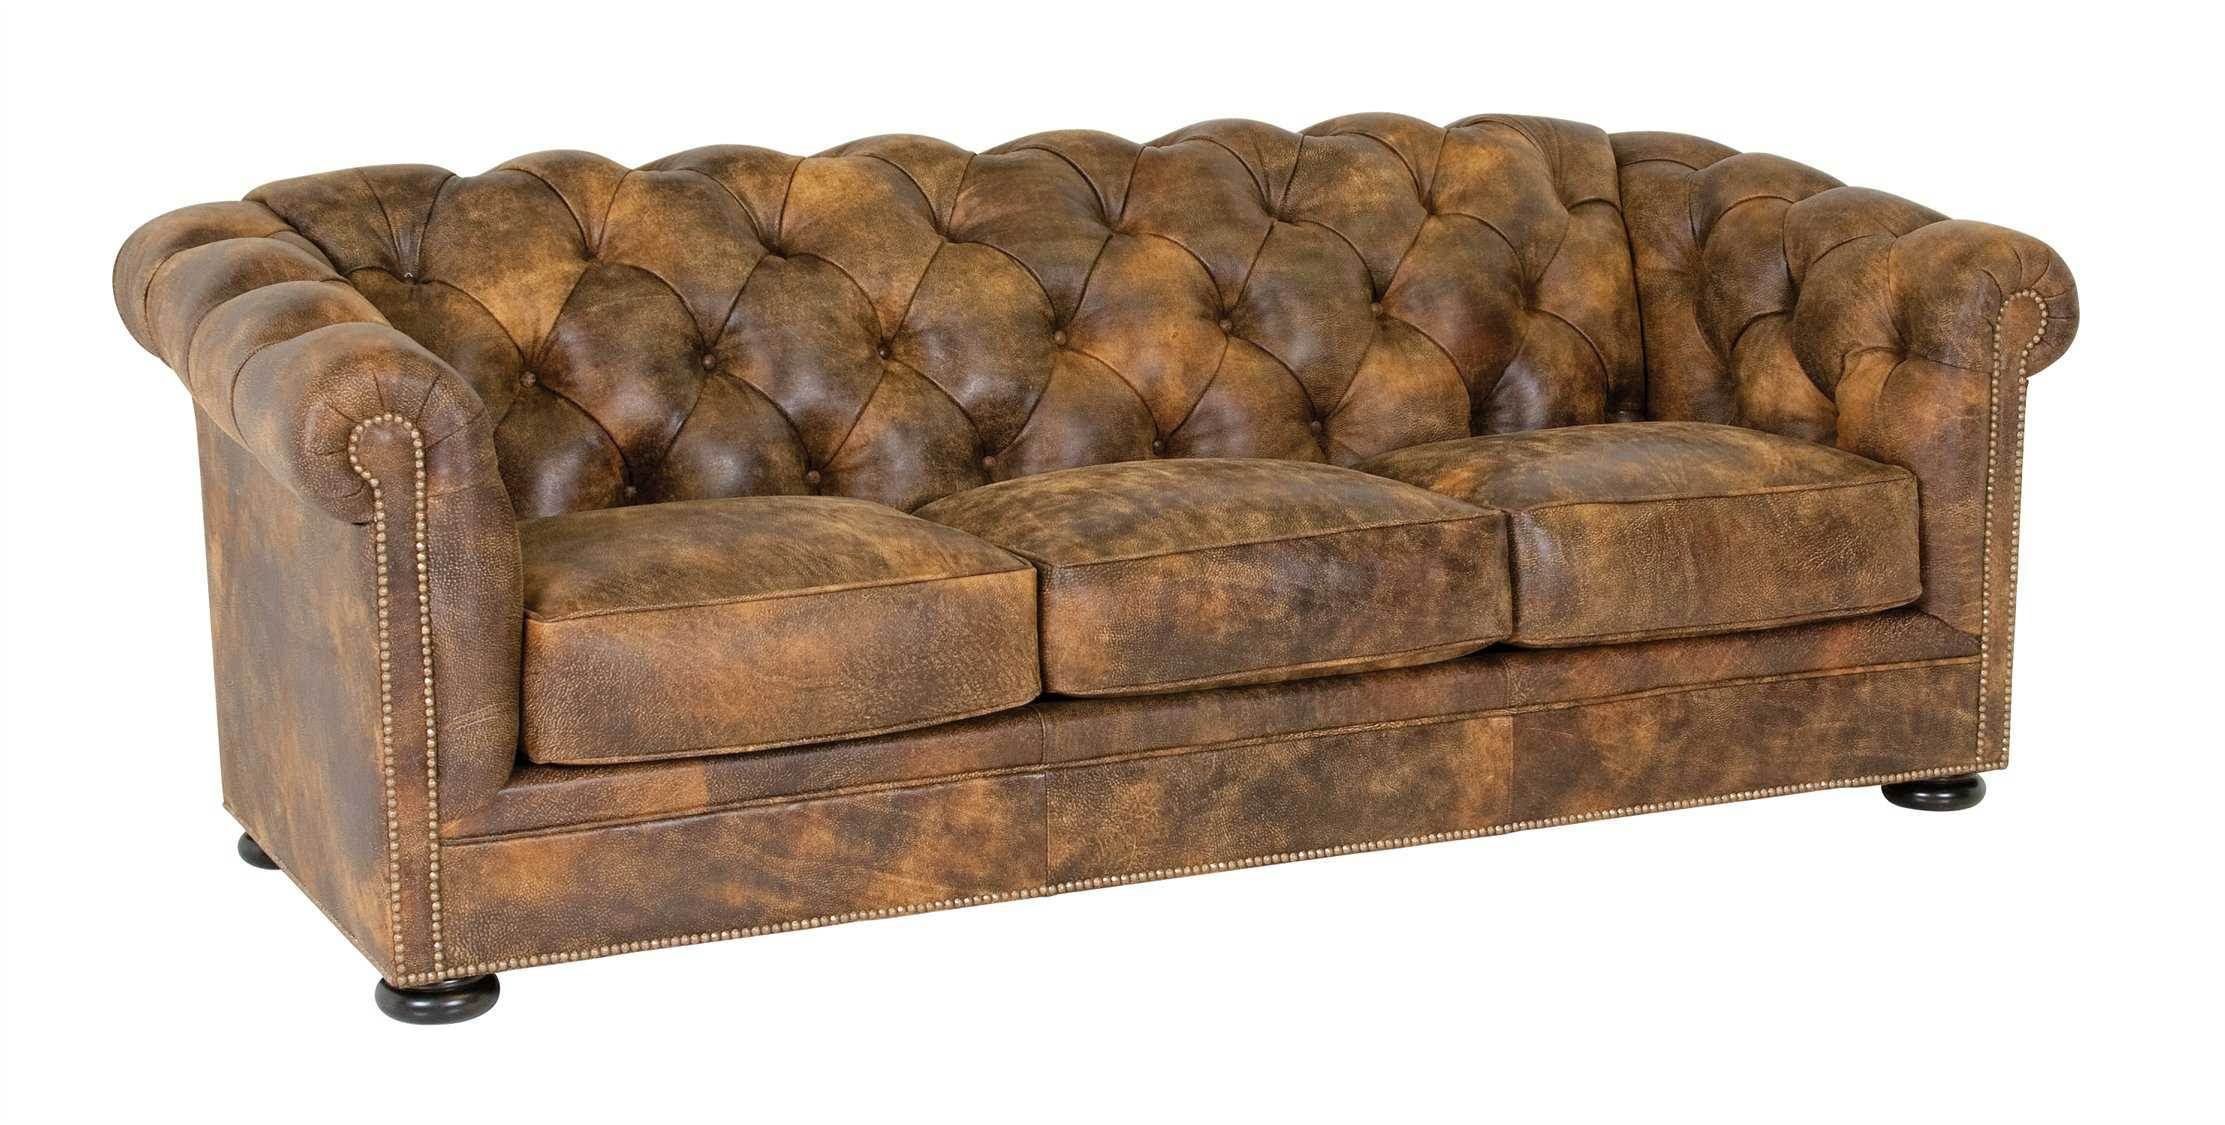 Classic Leather Montclair Tufted Sofa | CL1384